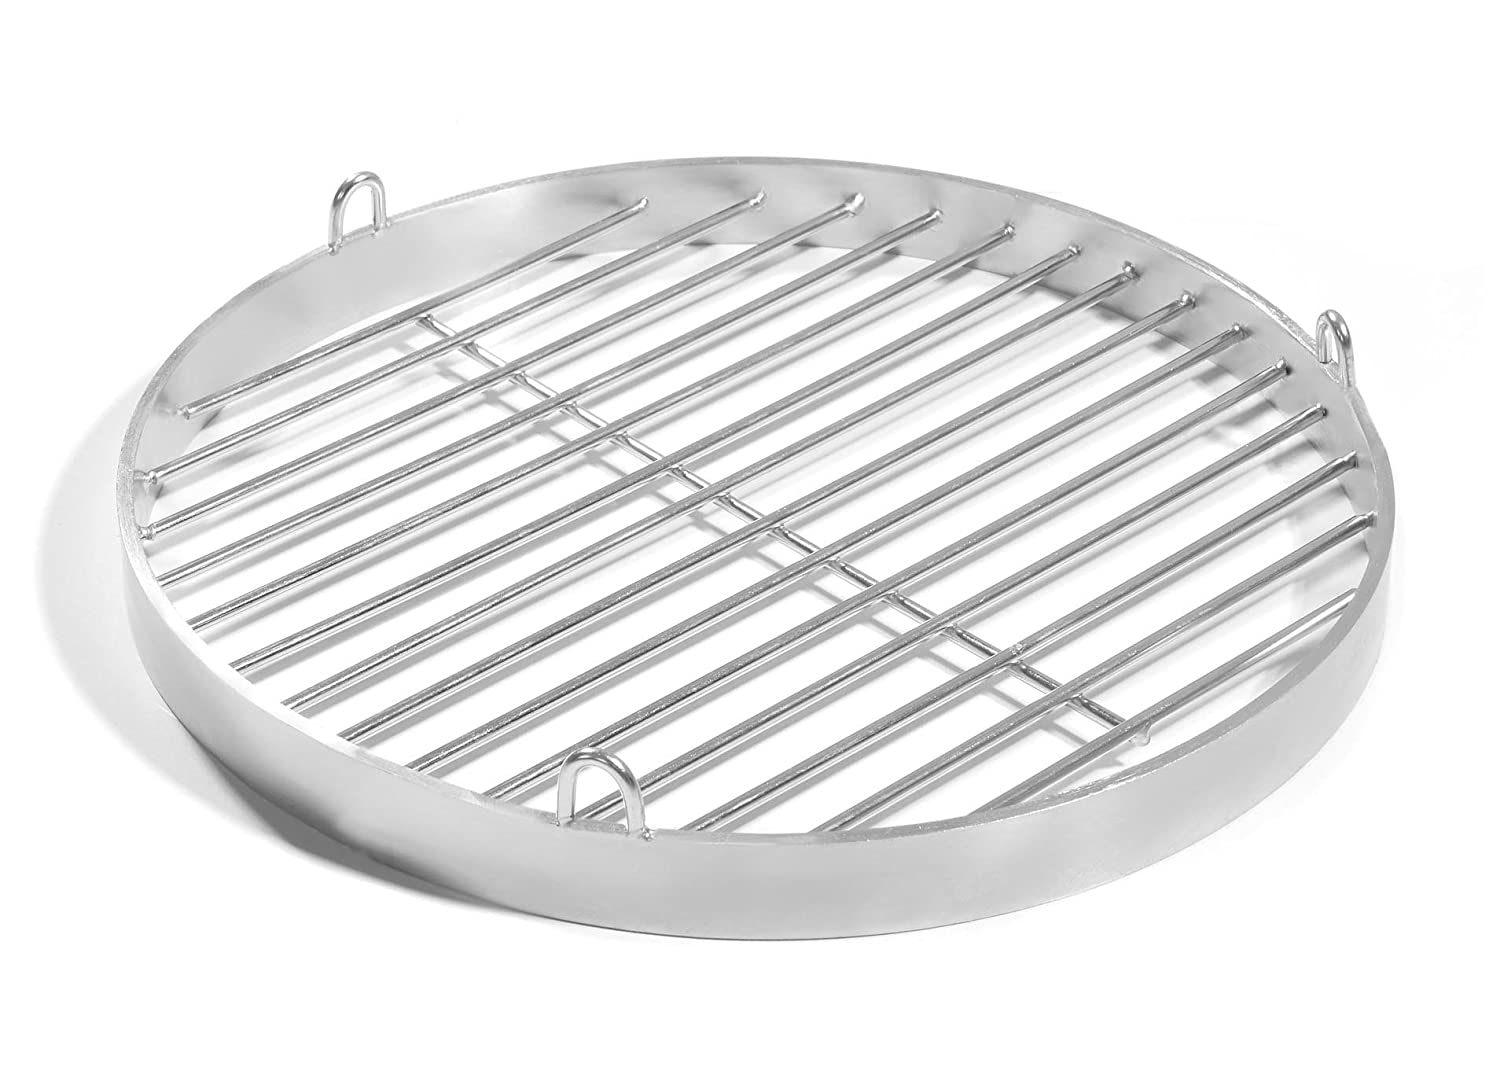 80 cm with Grip Eyes, V2 A Stainless Steel Grill Pan, Schwenker Grill Grate Fire Bowl BBQ Trays Round Grill Grilltante